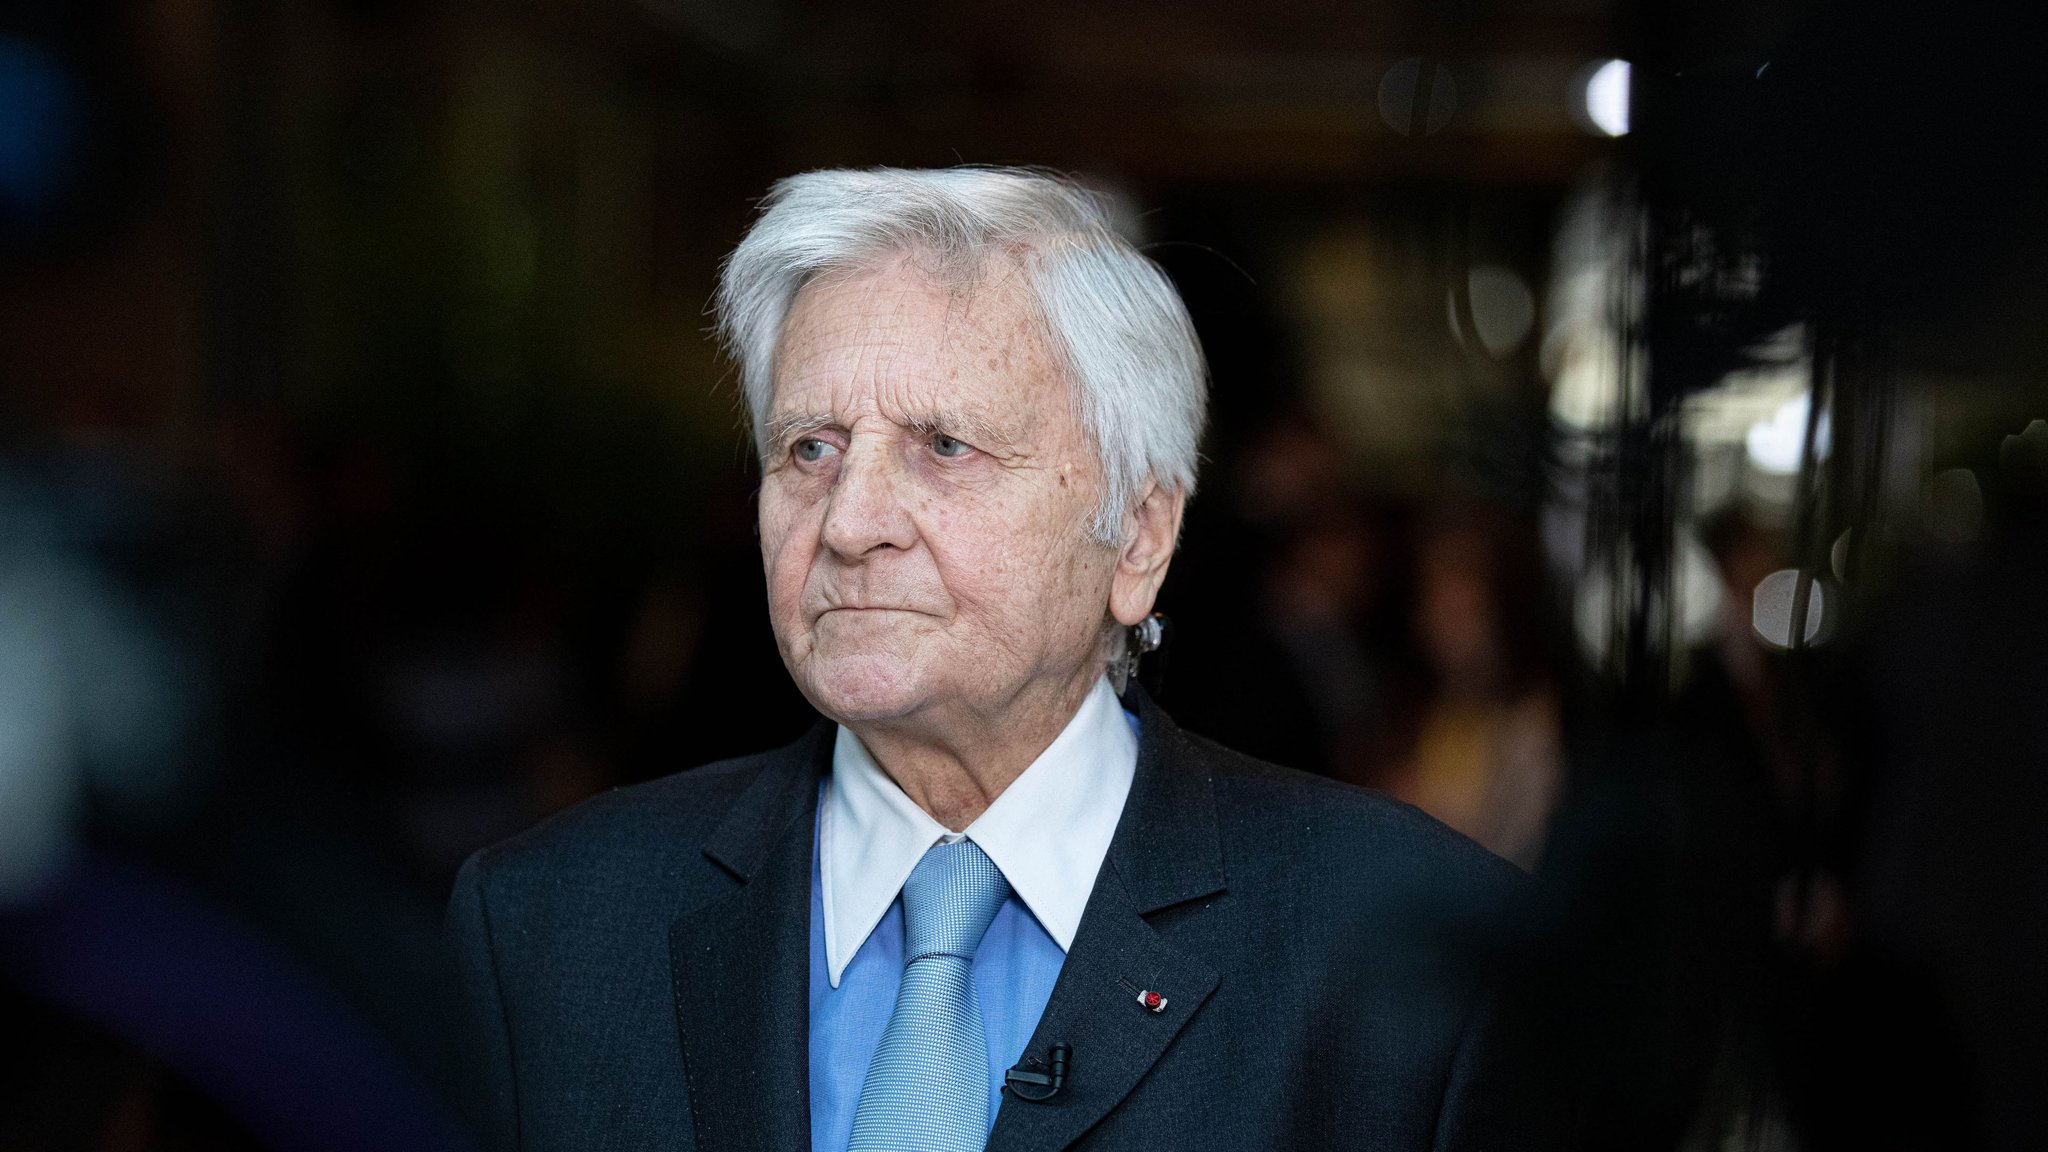 Trichet defends Draghi stance on monetary policy